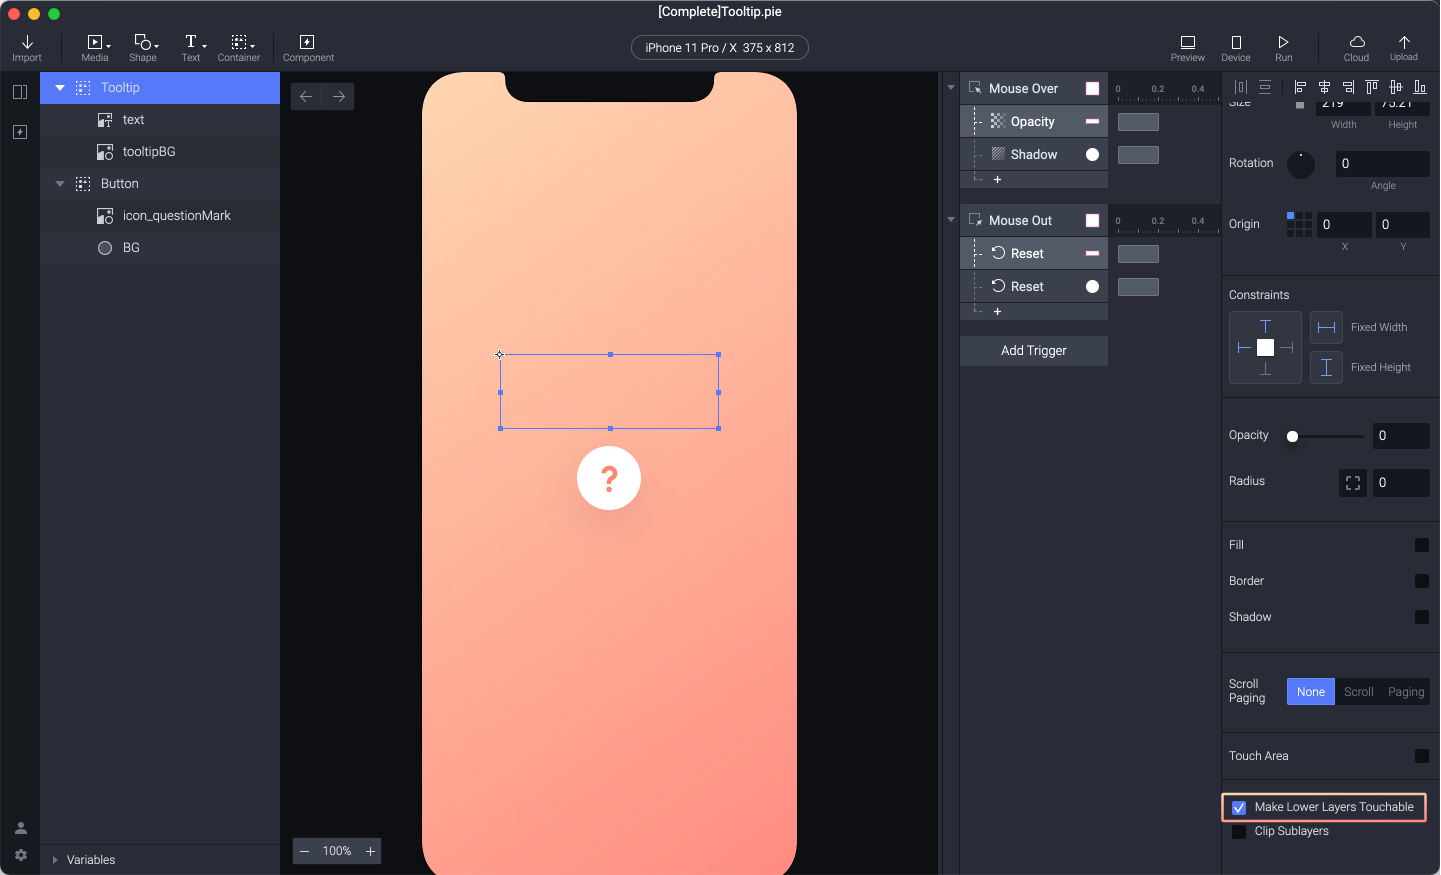 Check the Make Lower Layers Touchable option